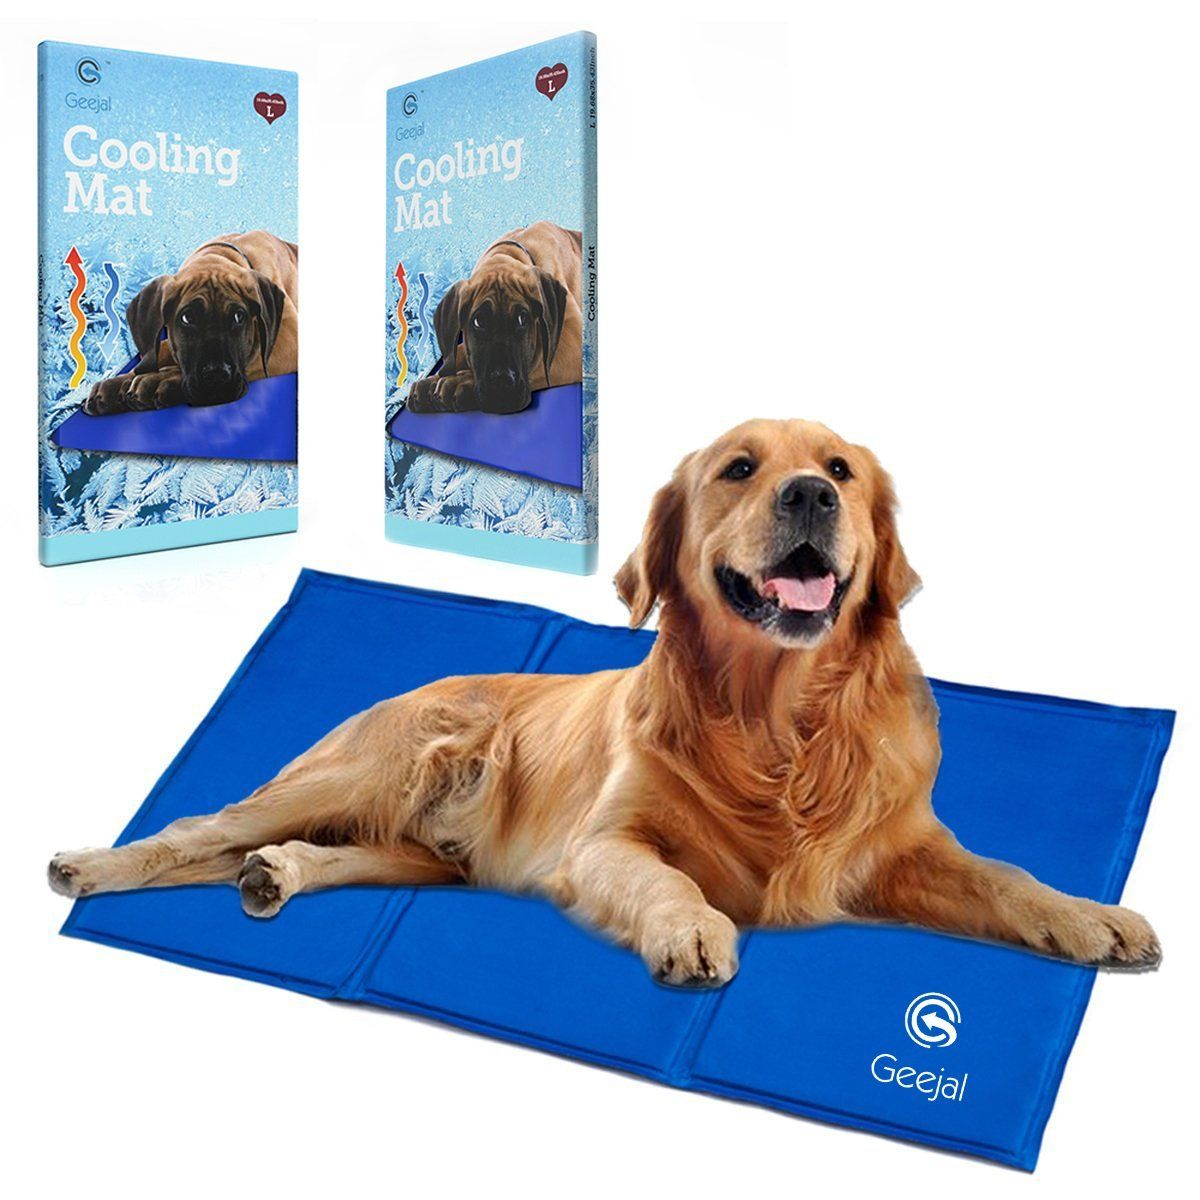 Geejal Pet Cooling Mat For Dogs With Selfpressure Activated Blue Gel Large Cooling Pad For Dogs And Cats Of All Siz Cool Dog Beds Dog Cooling Mat Diy Dog Stuff